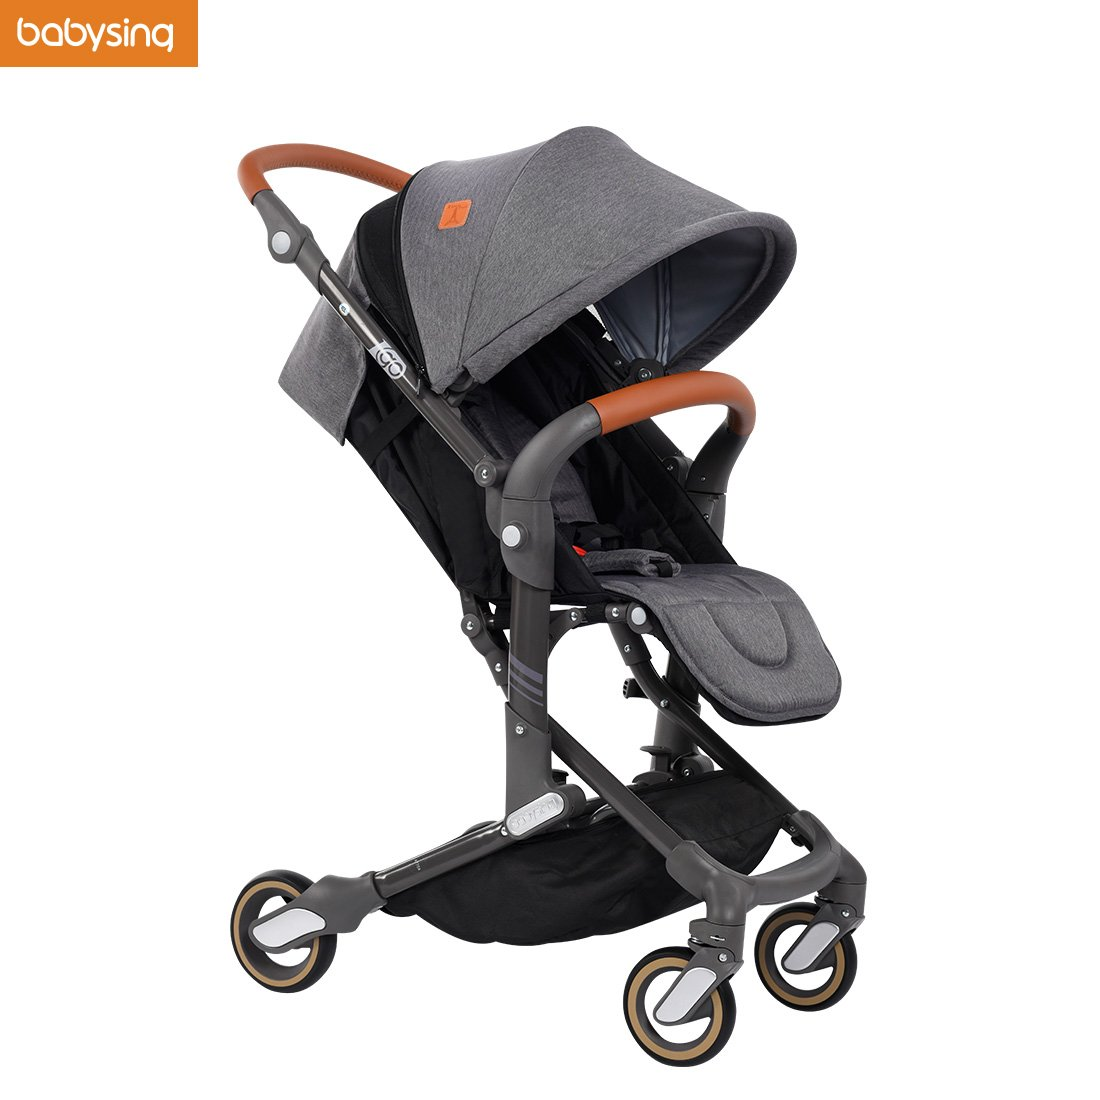 Babysing High View Lightweight Deluxe Convenience Stroller(Grey)